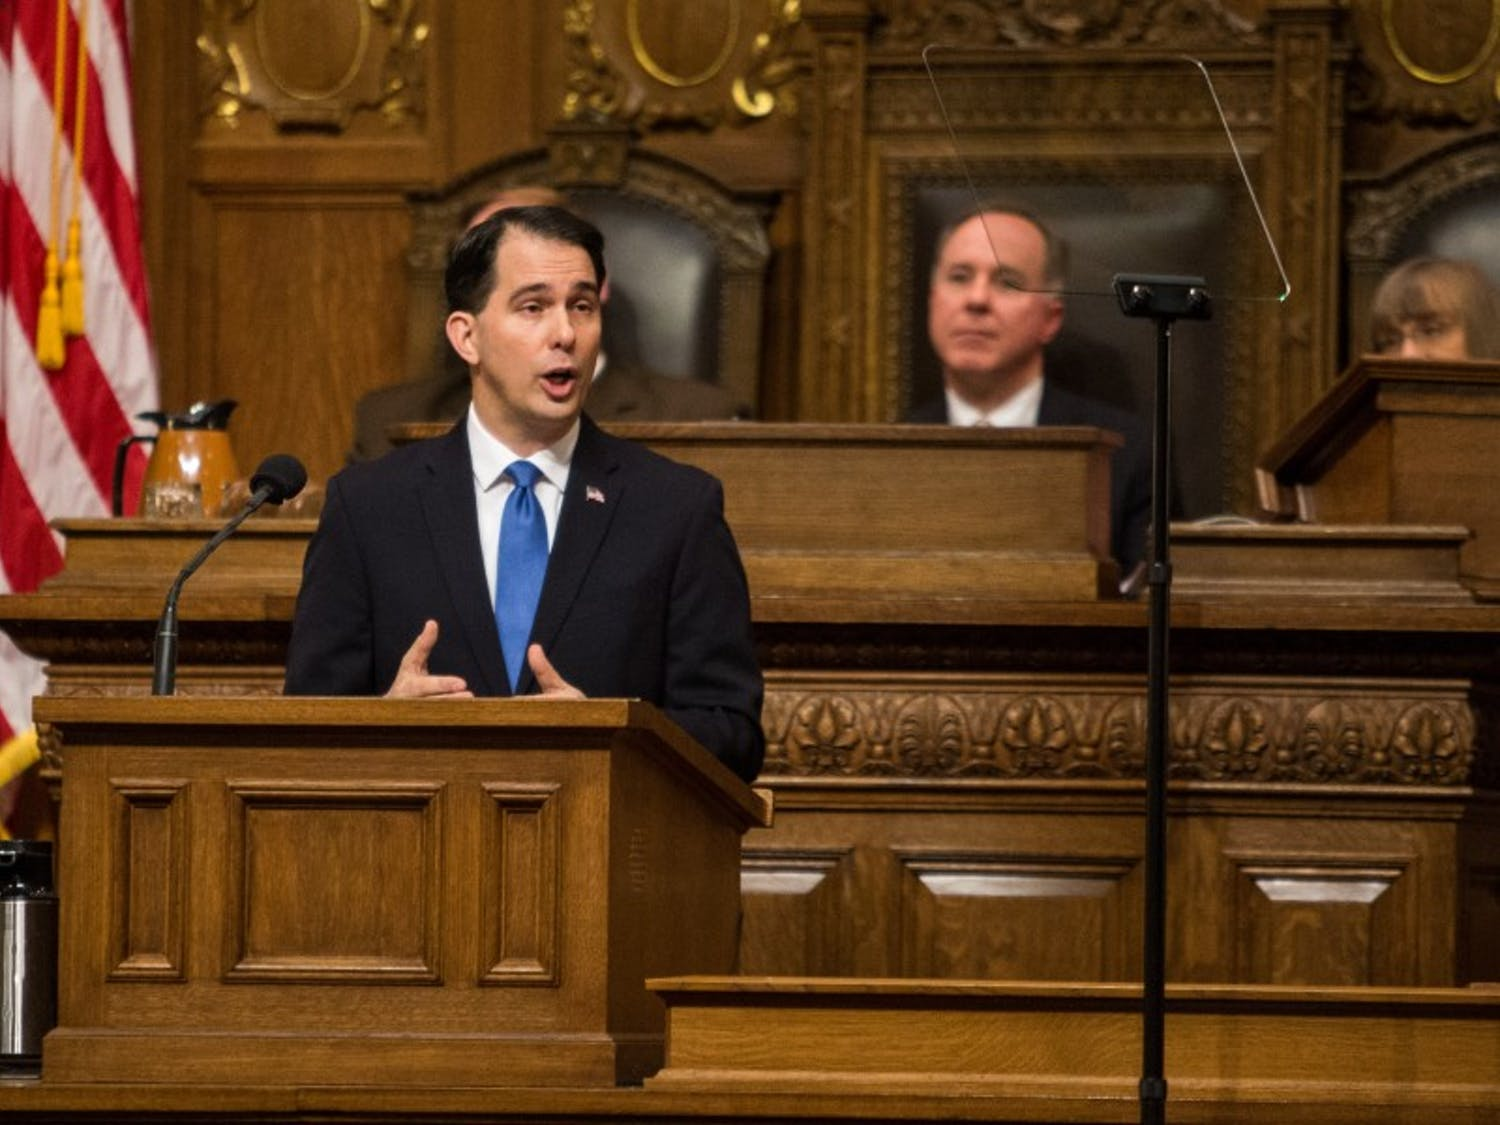 Gov. Scott Walker announced Monday he is moving forward with a plan to drug test food stamp applicants.